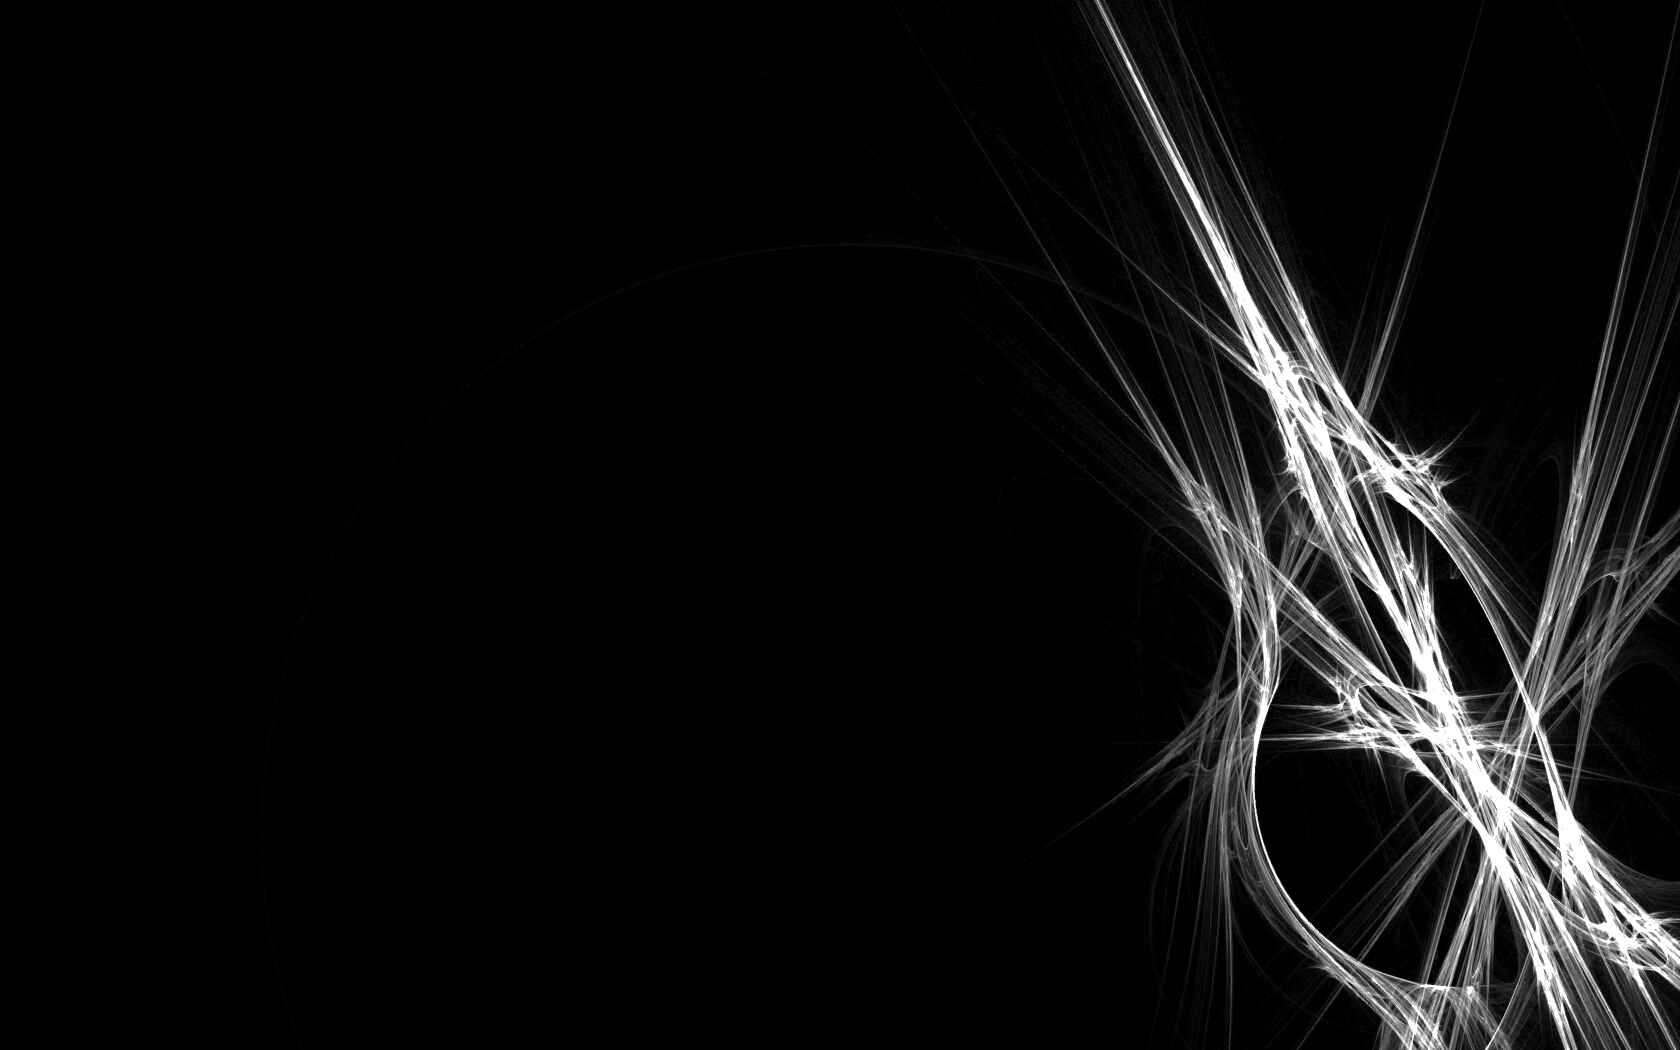 Cool Black And White Backgrounds 1680x1050